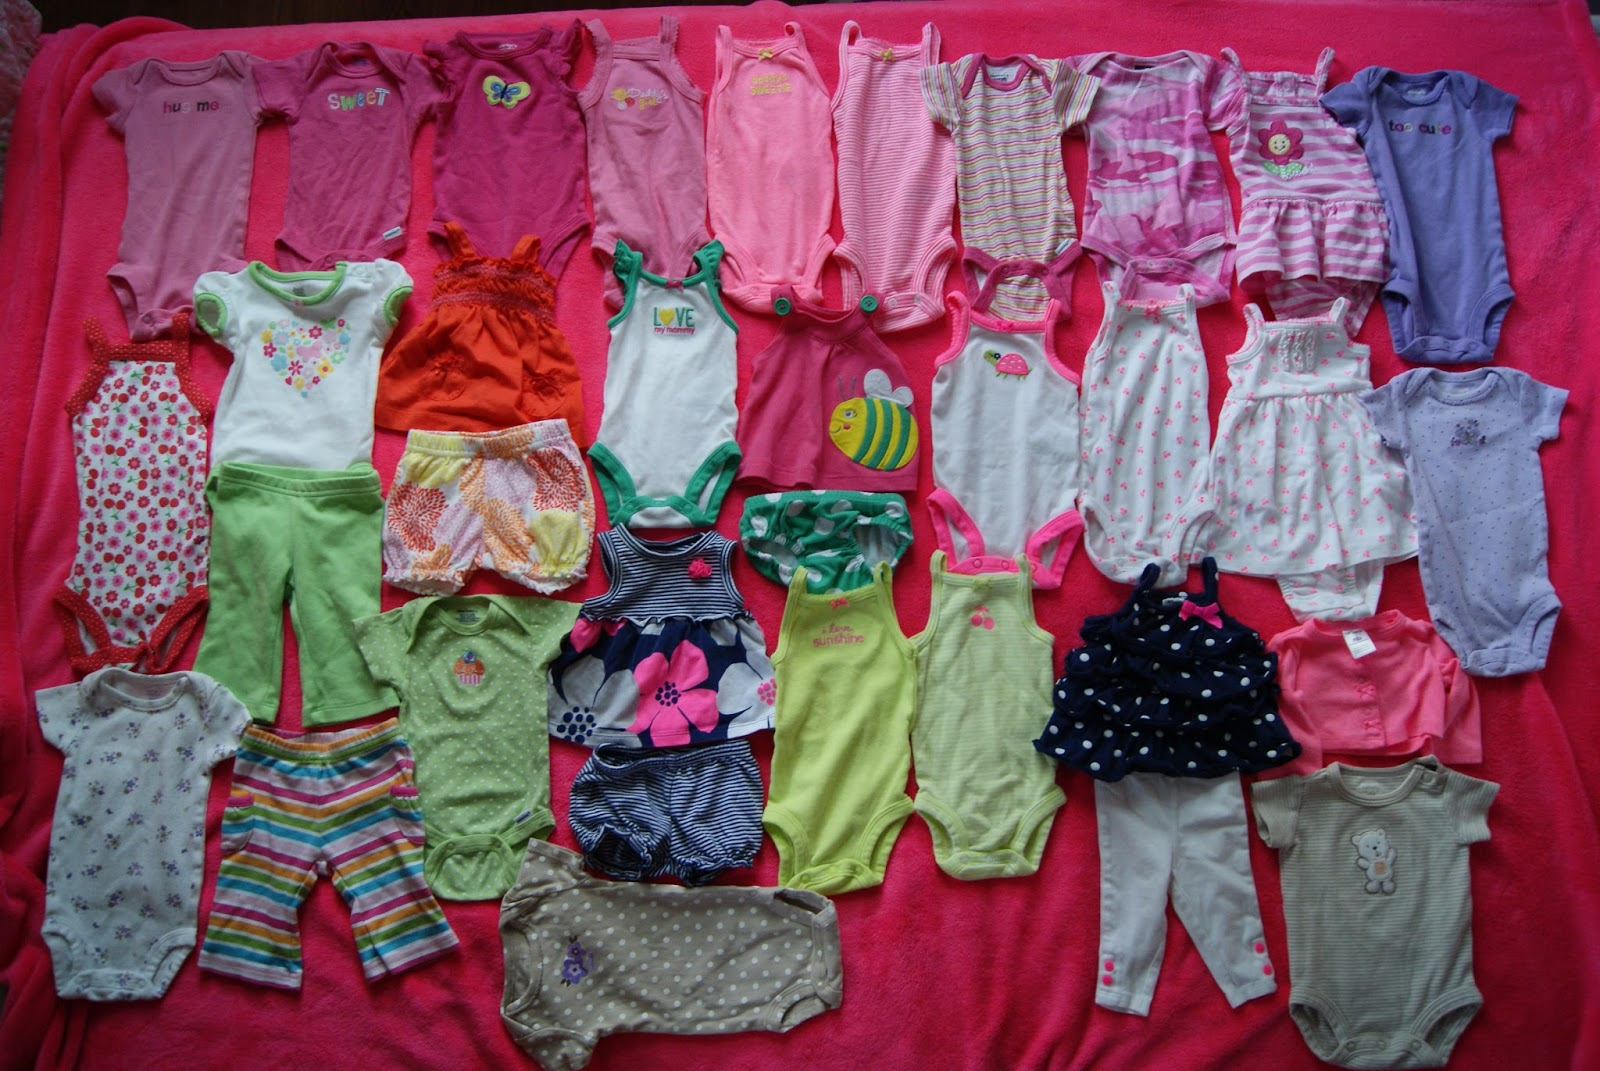 Newborn clothes, 34 items for $47